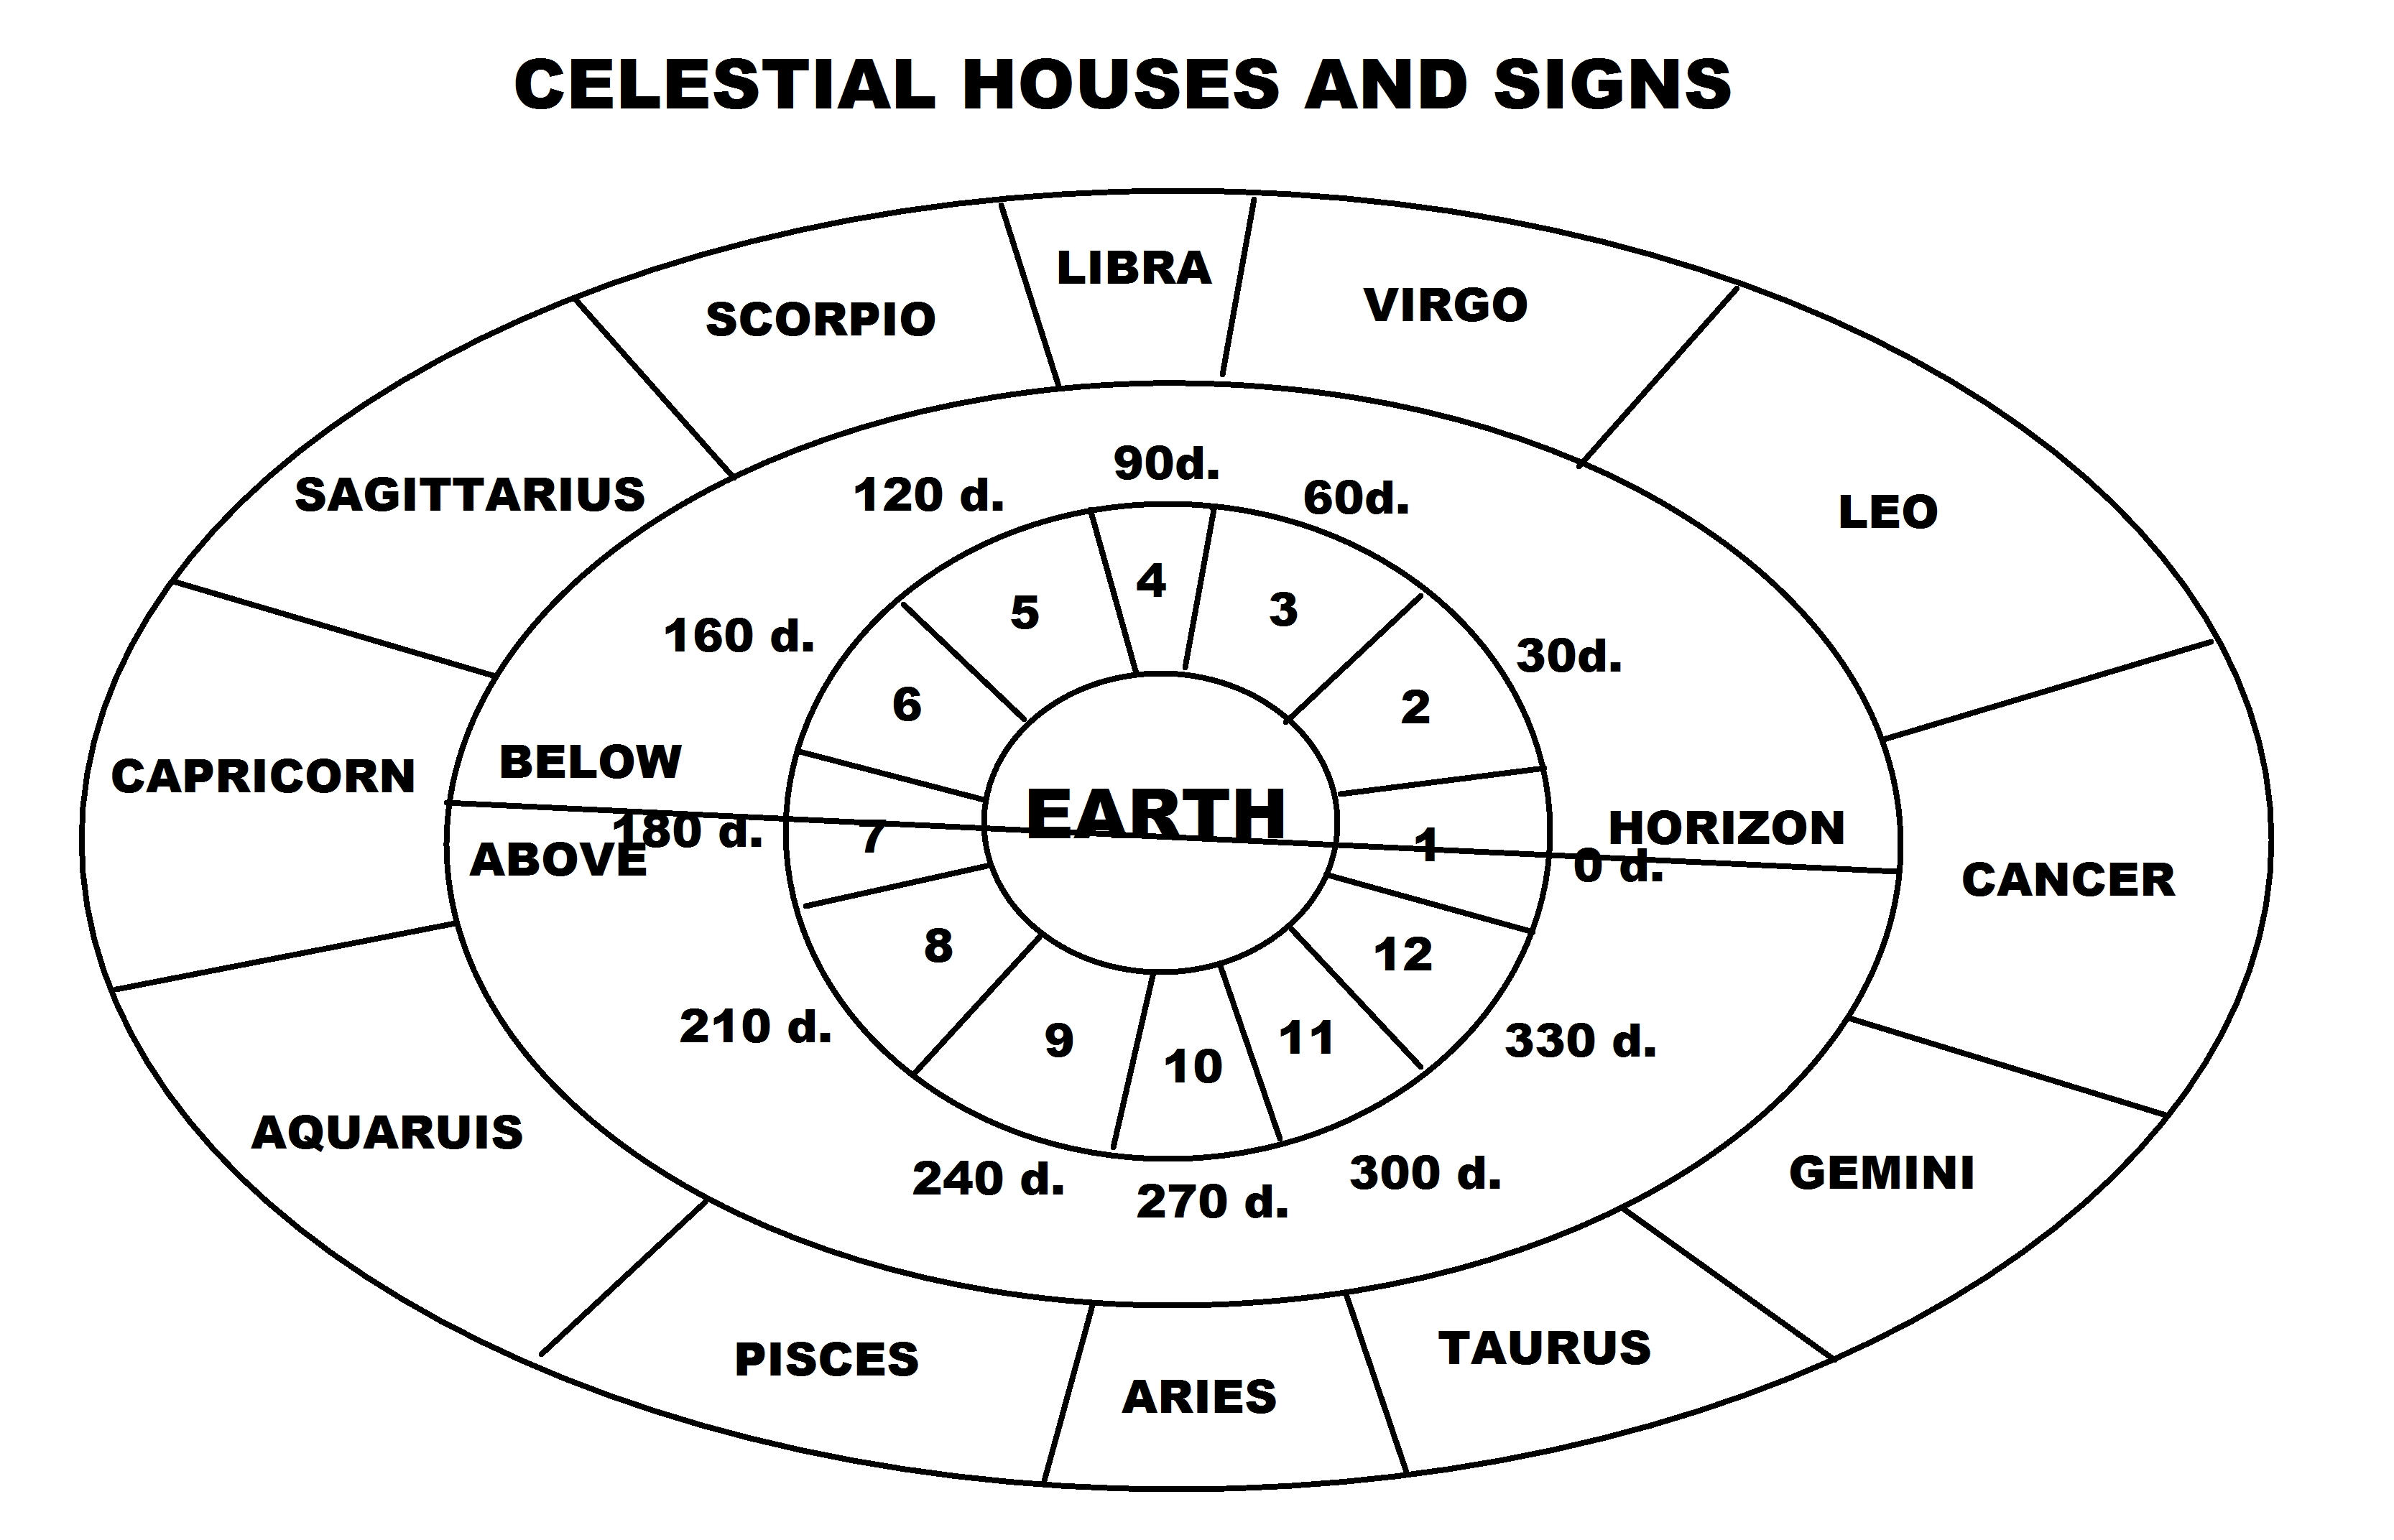 Jyotish Horoscope: 1. Houses And Signs | Search For The Soul